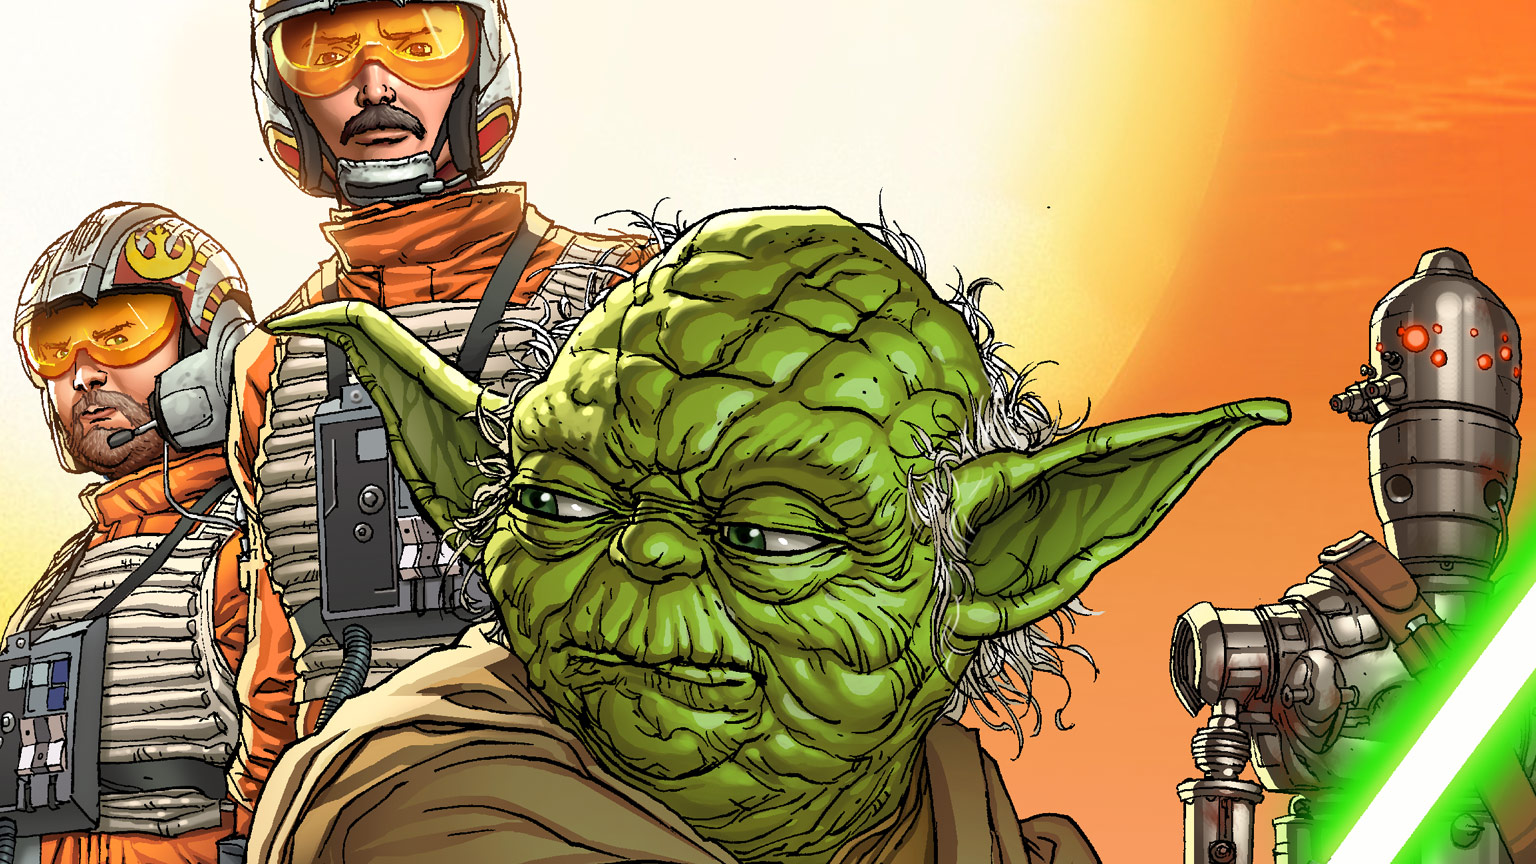 Star Wars: Age of Rebellion #1 cover.